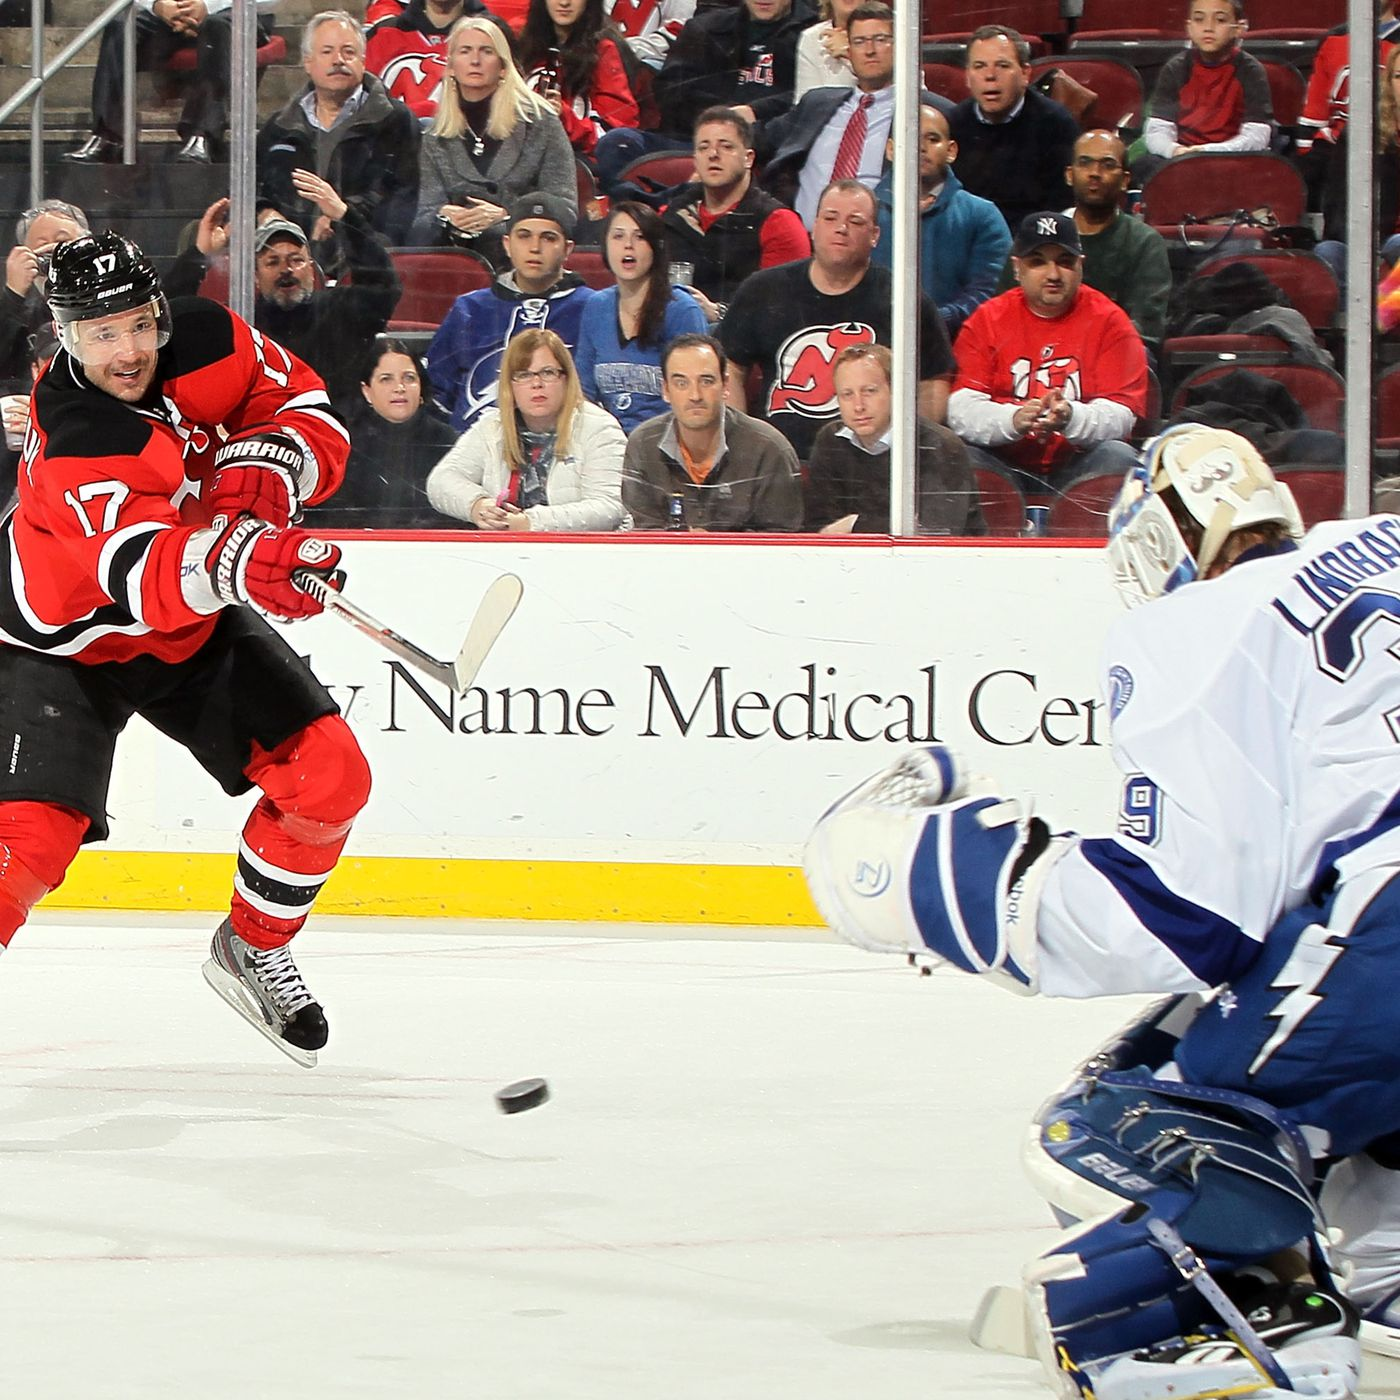 c2e36fe06 New Jersey Devils Power Past Tampa Bay Lightning with Three Special Teams  Goals in 4-2 Victory